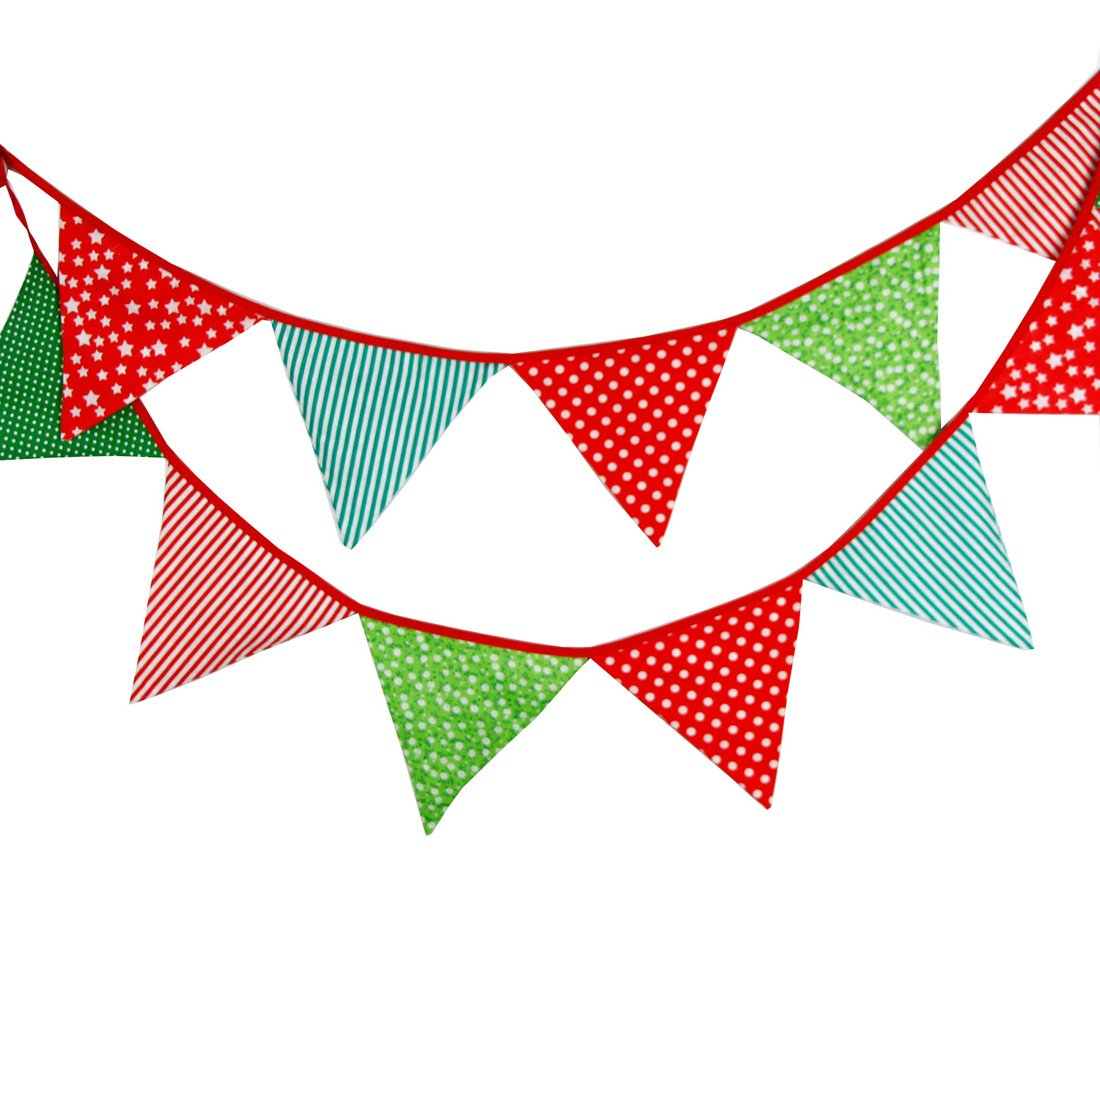 Pendent clipart festival banner Banners Party 【Little Banners Banner